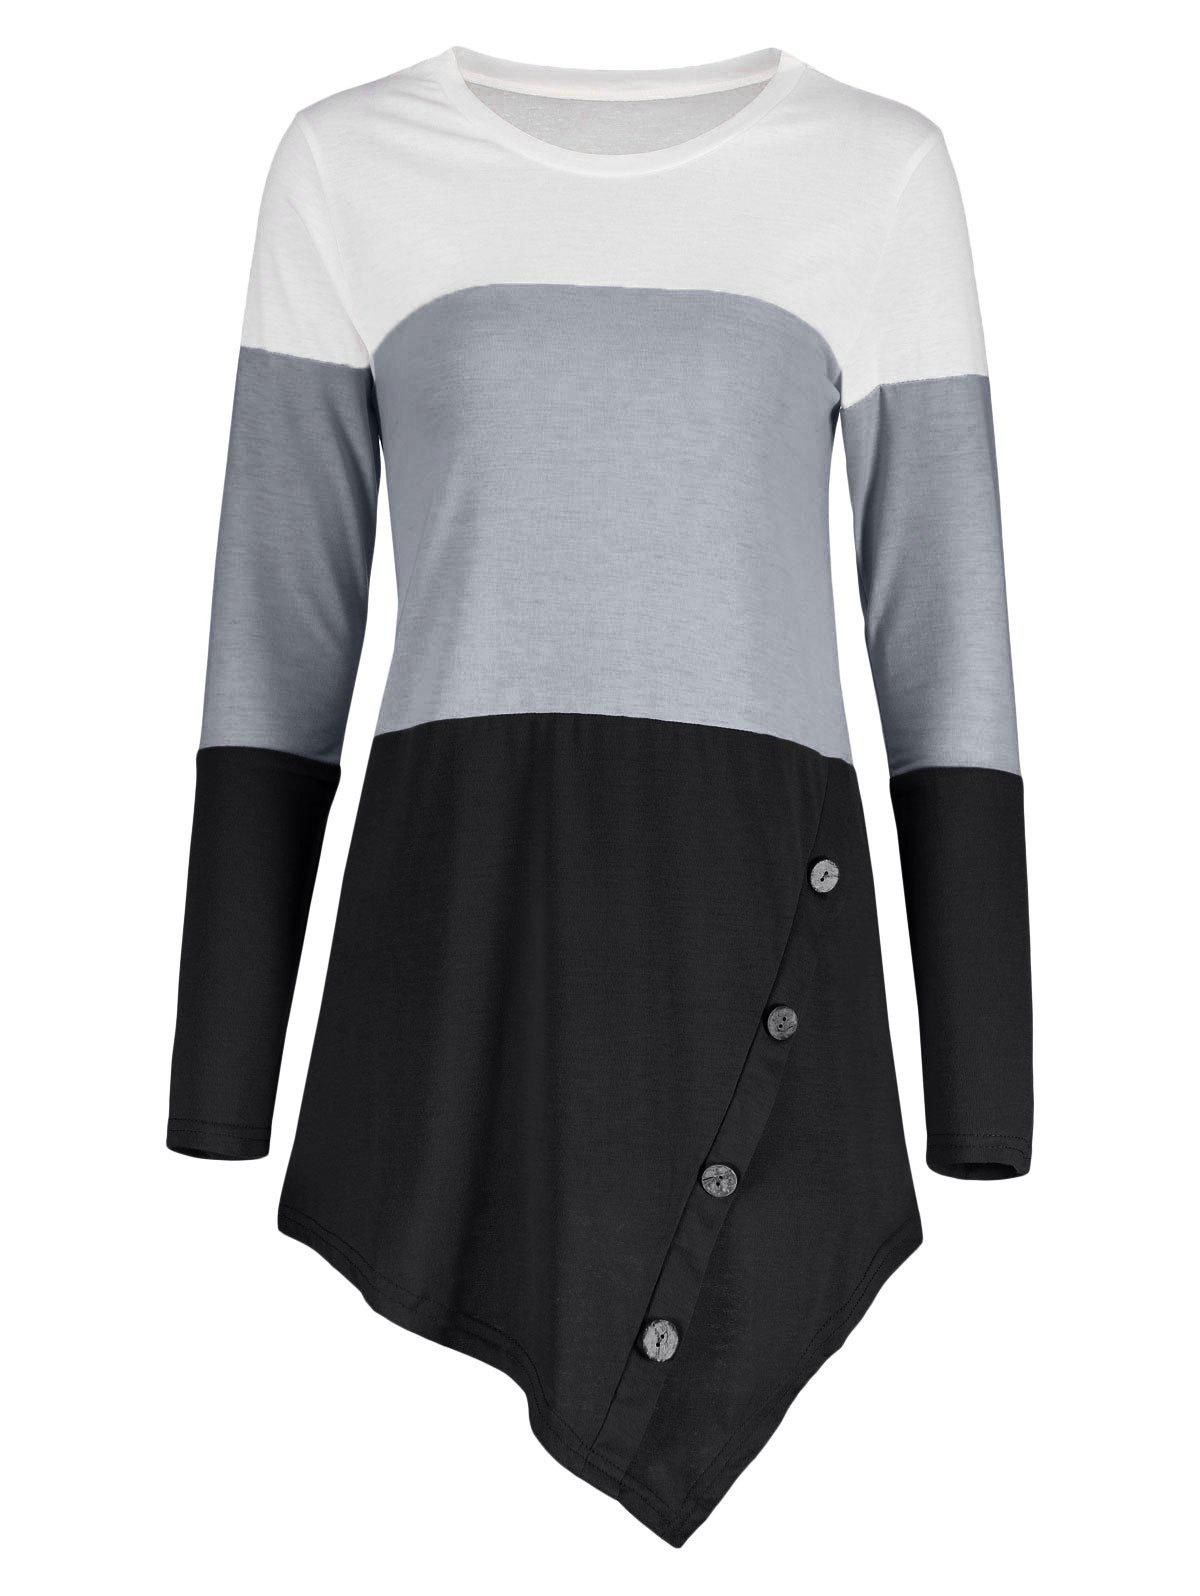 Button Embellished Asymmetric Striped Color Block TopWOMEN<br><br>Size: 2XL; Color: BLACK; Material: Polyester,Spandex; Shirt Length: Long; Sleeve Length: Full; Collar: Round Neck; Style: Fashion; Pattern Type: Striped; Season: Fall,Spring; Weight: 0.3200kg; Package Contents: 1 x Top;